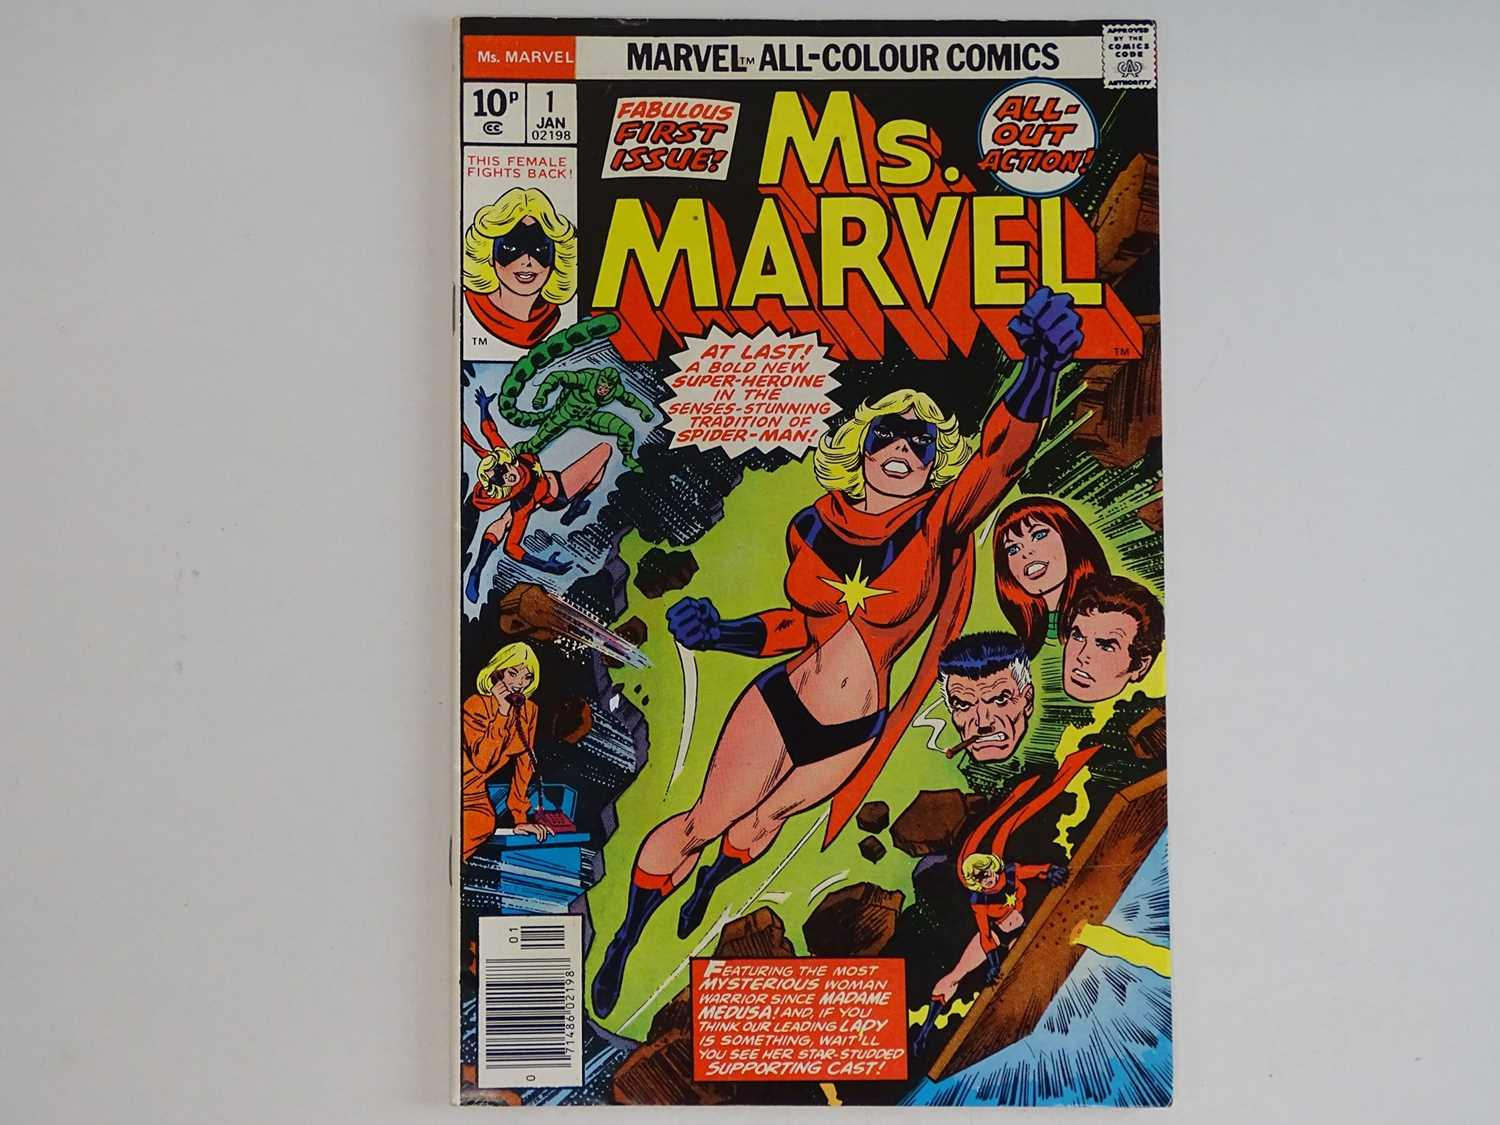 MS. MARVEL #1 - (1977 - MARVEL - UK Price Variant) - Ms. Marvel's first own title solo series +